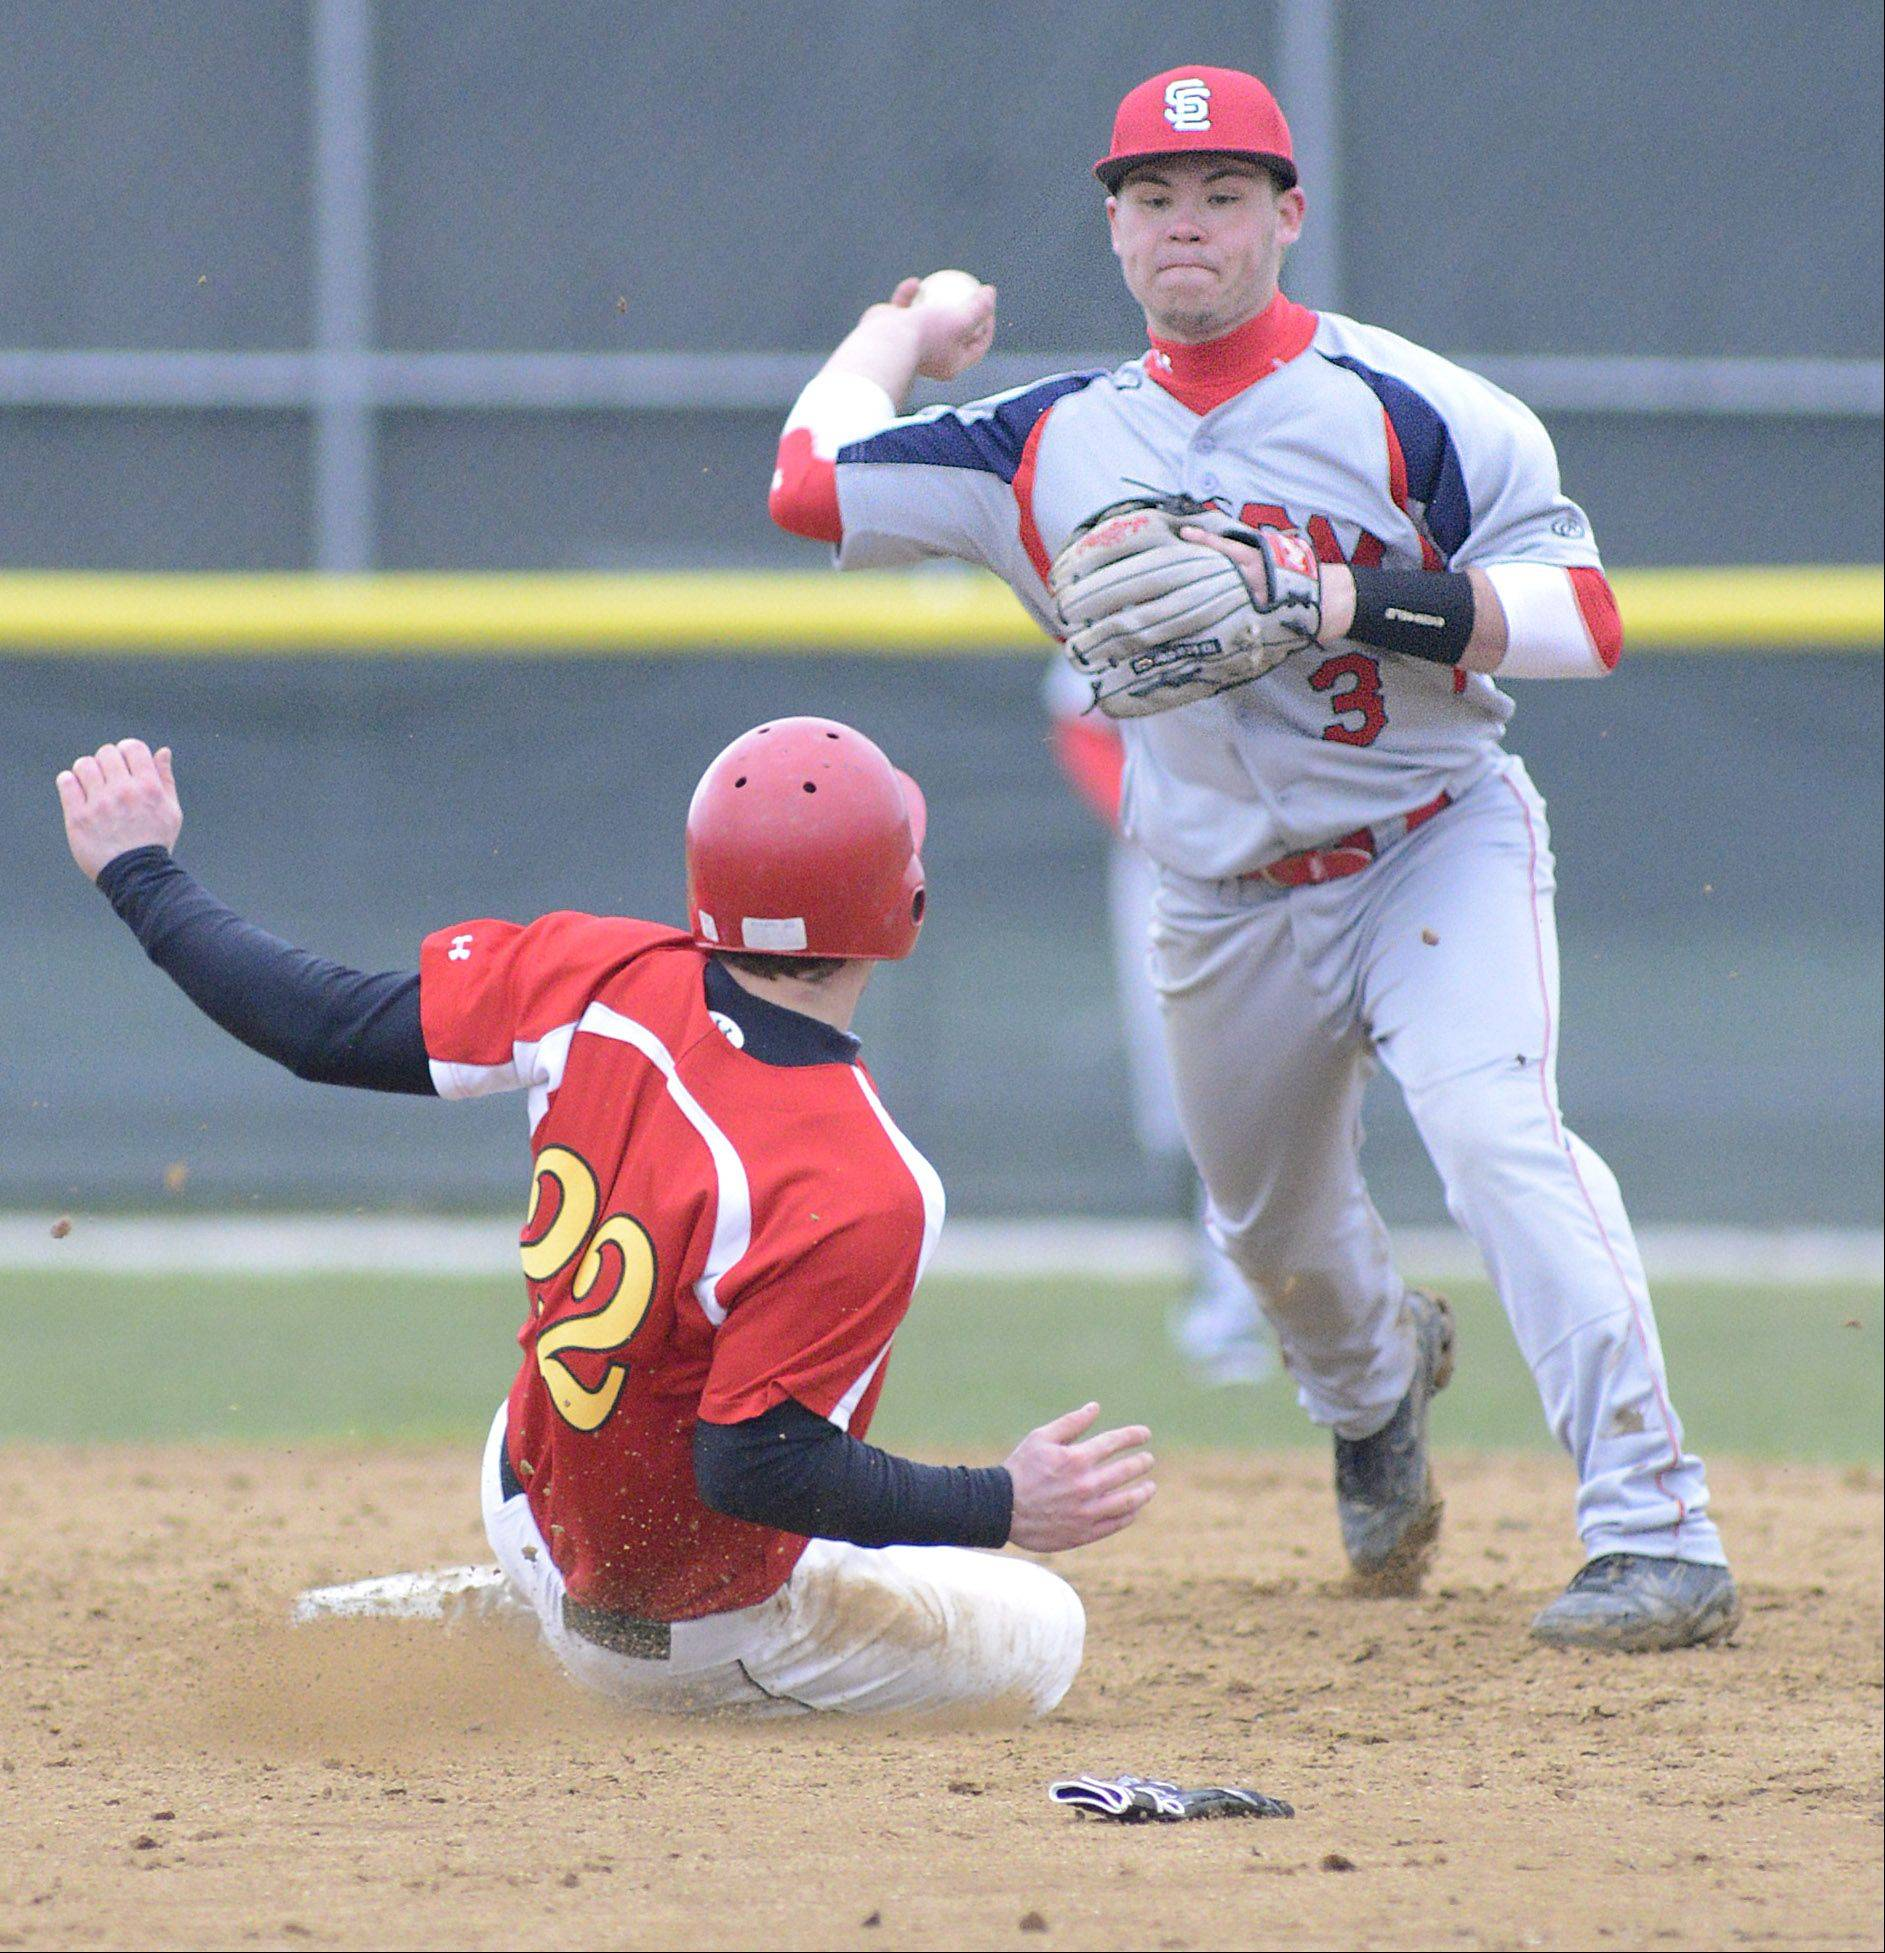 Batavia's Robbie Bowman is out at second as South Elgin's Riley Halter attempts a double play at first base in the fourth inning on Friday, April 12.